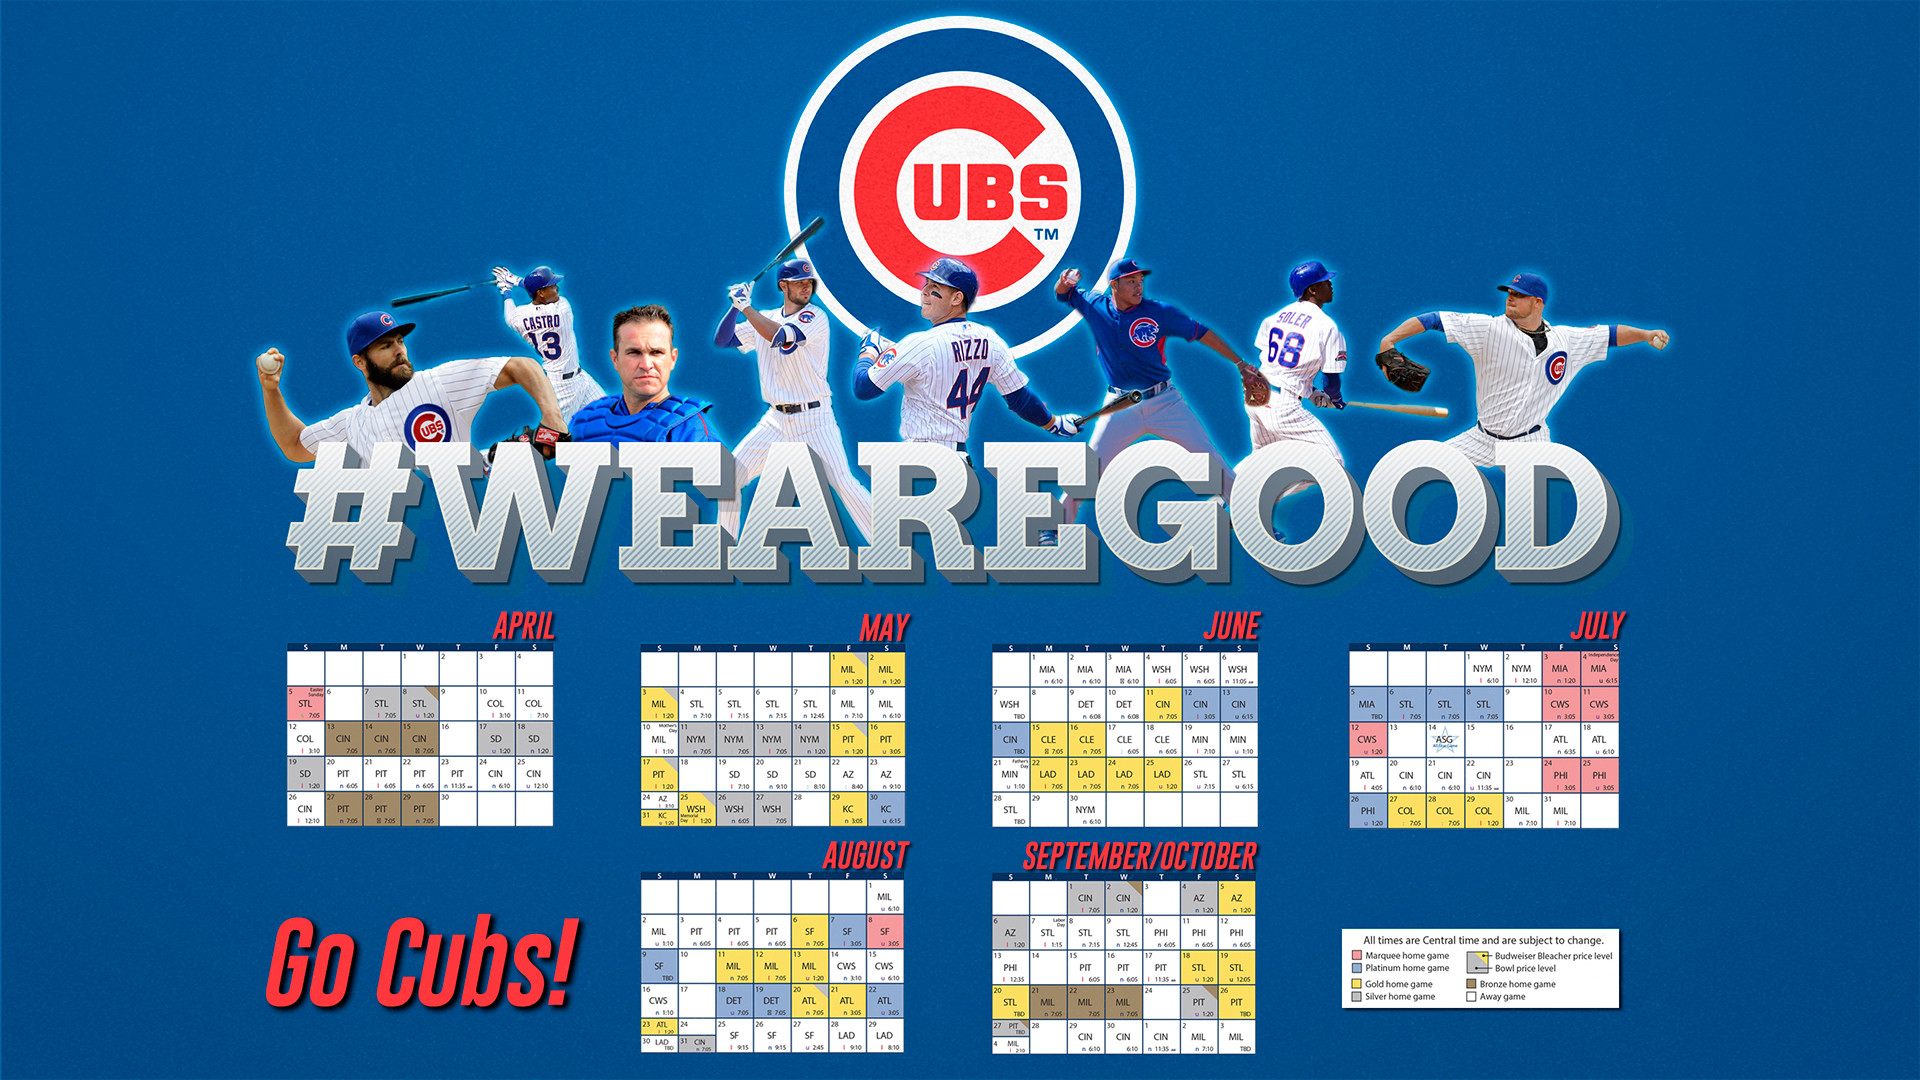 1920x1080 #wearegood 2015 Schedule wallpaper (more sizes in comments) ...